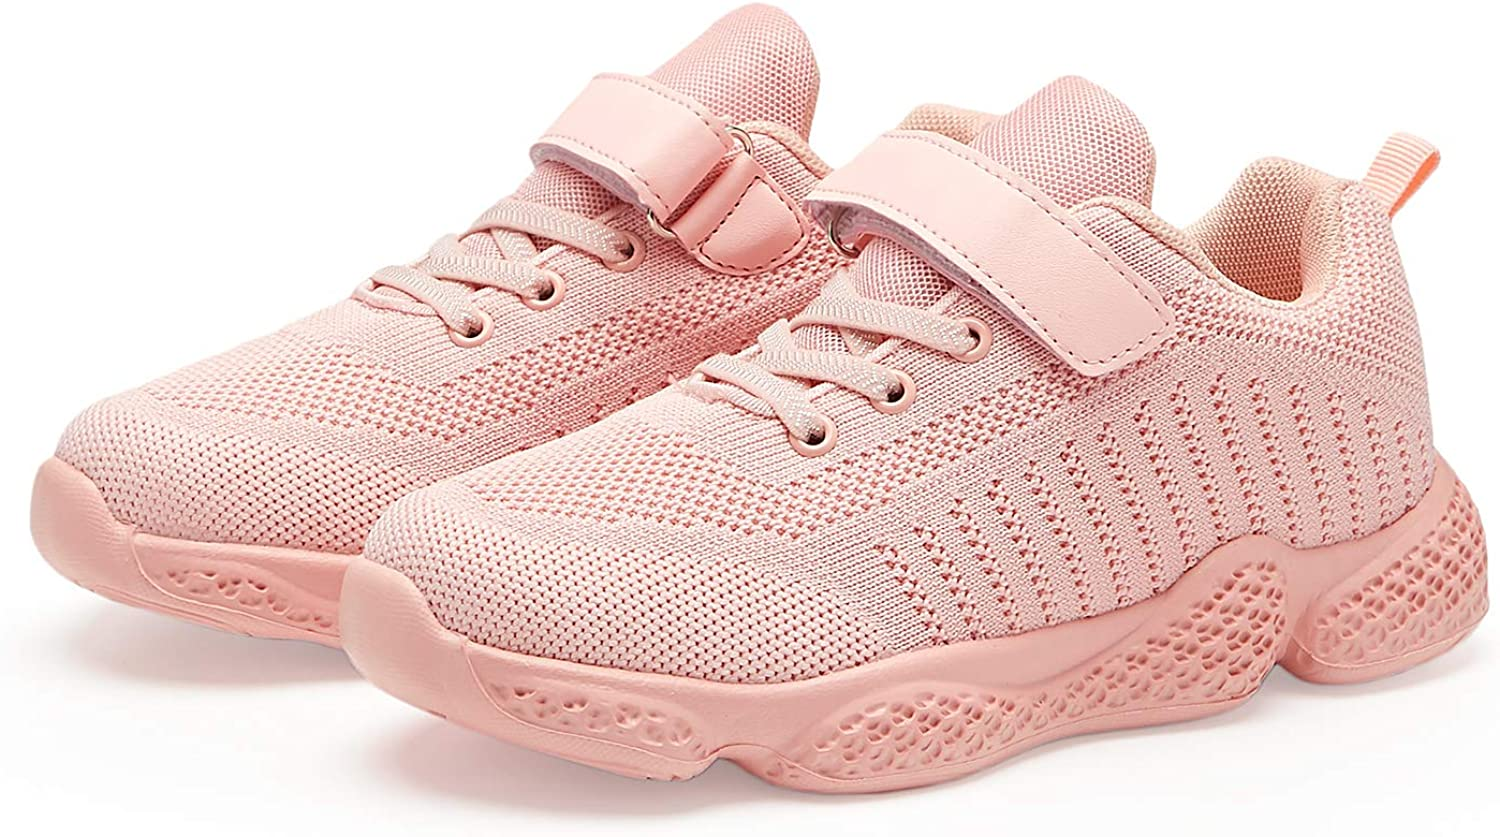 Hetios Max 71% OFF Kids Shoes Girls Running Lightweight Breat Athletic Baltimore Mall